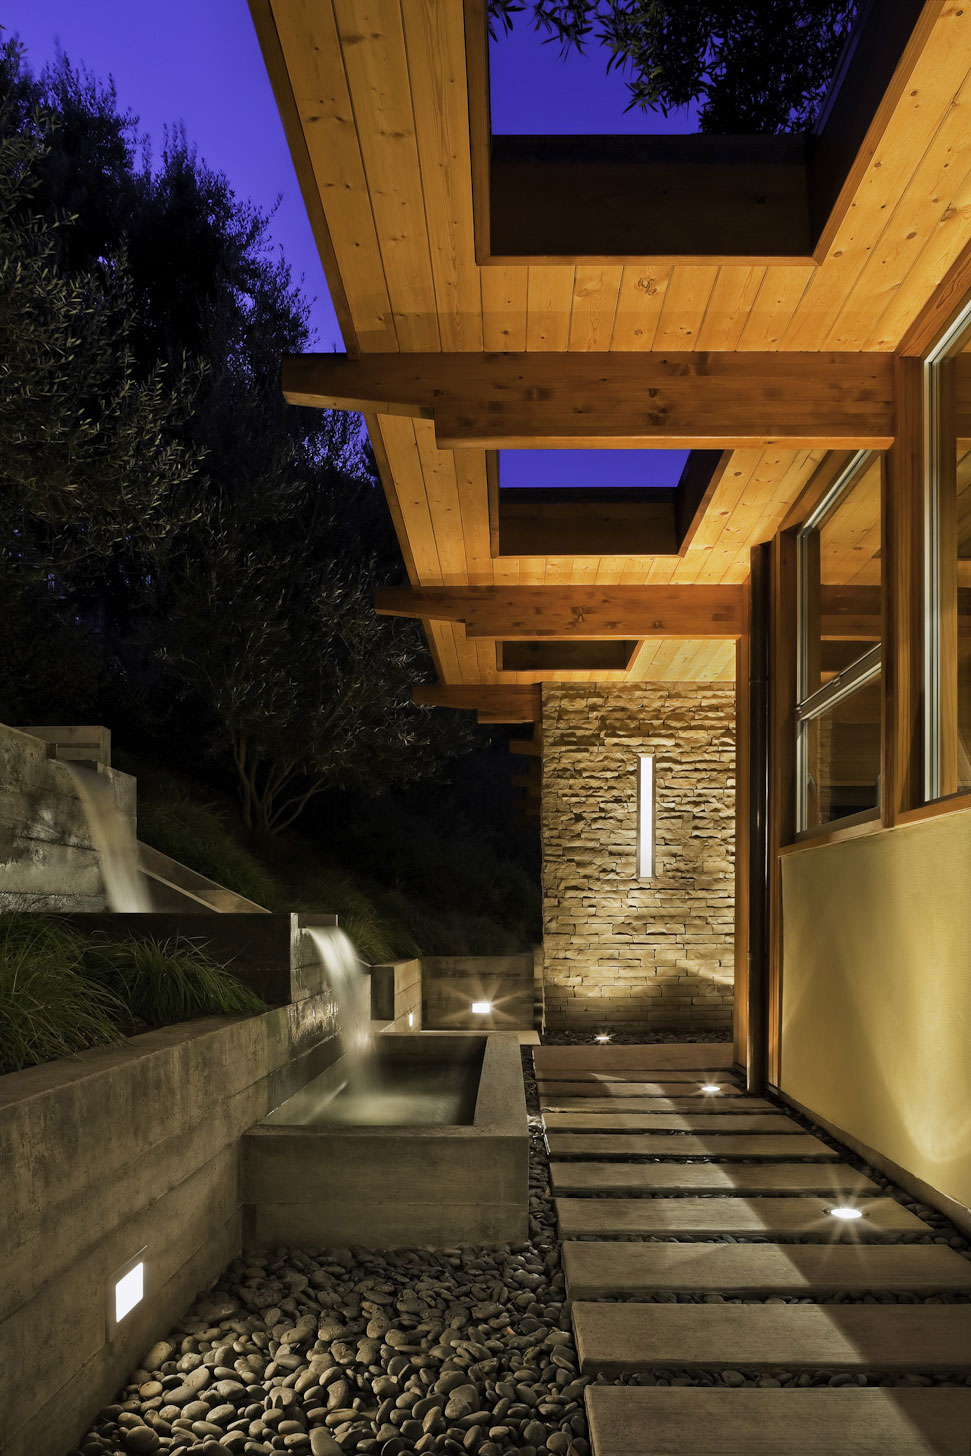 Waterfall, Water Feature, Pathway, Lighting, Mid-Century Modern Home in Santa Barbara, California